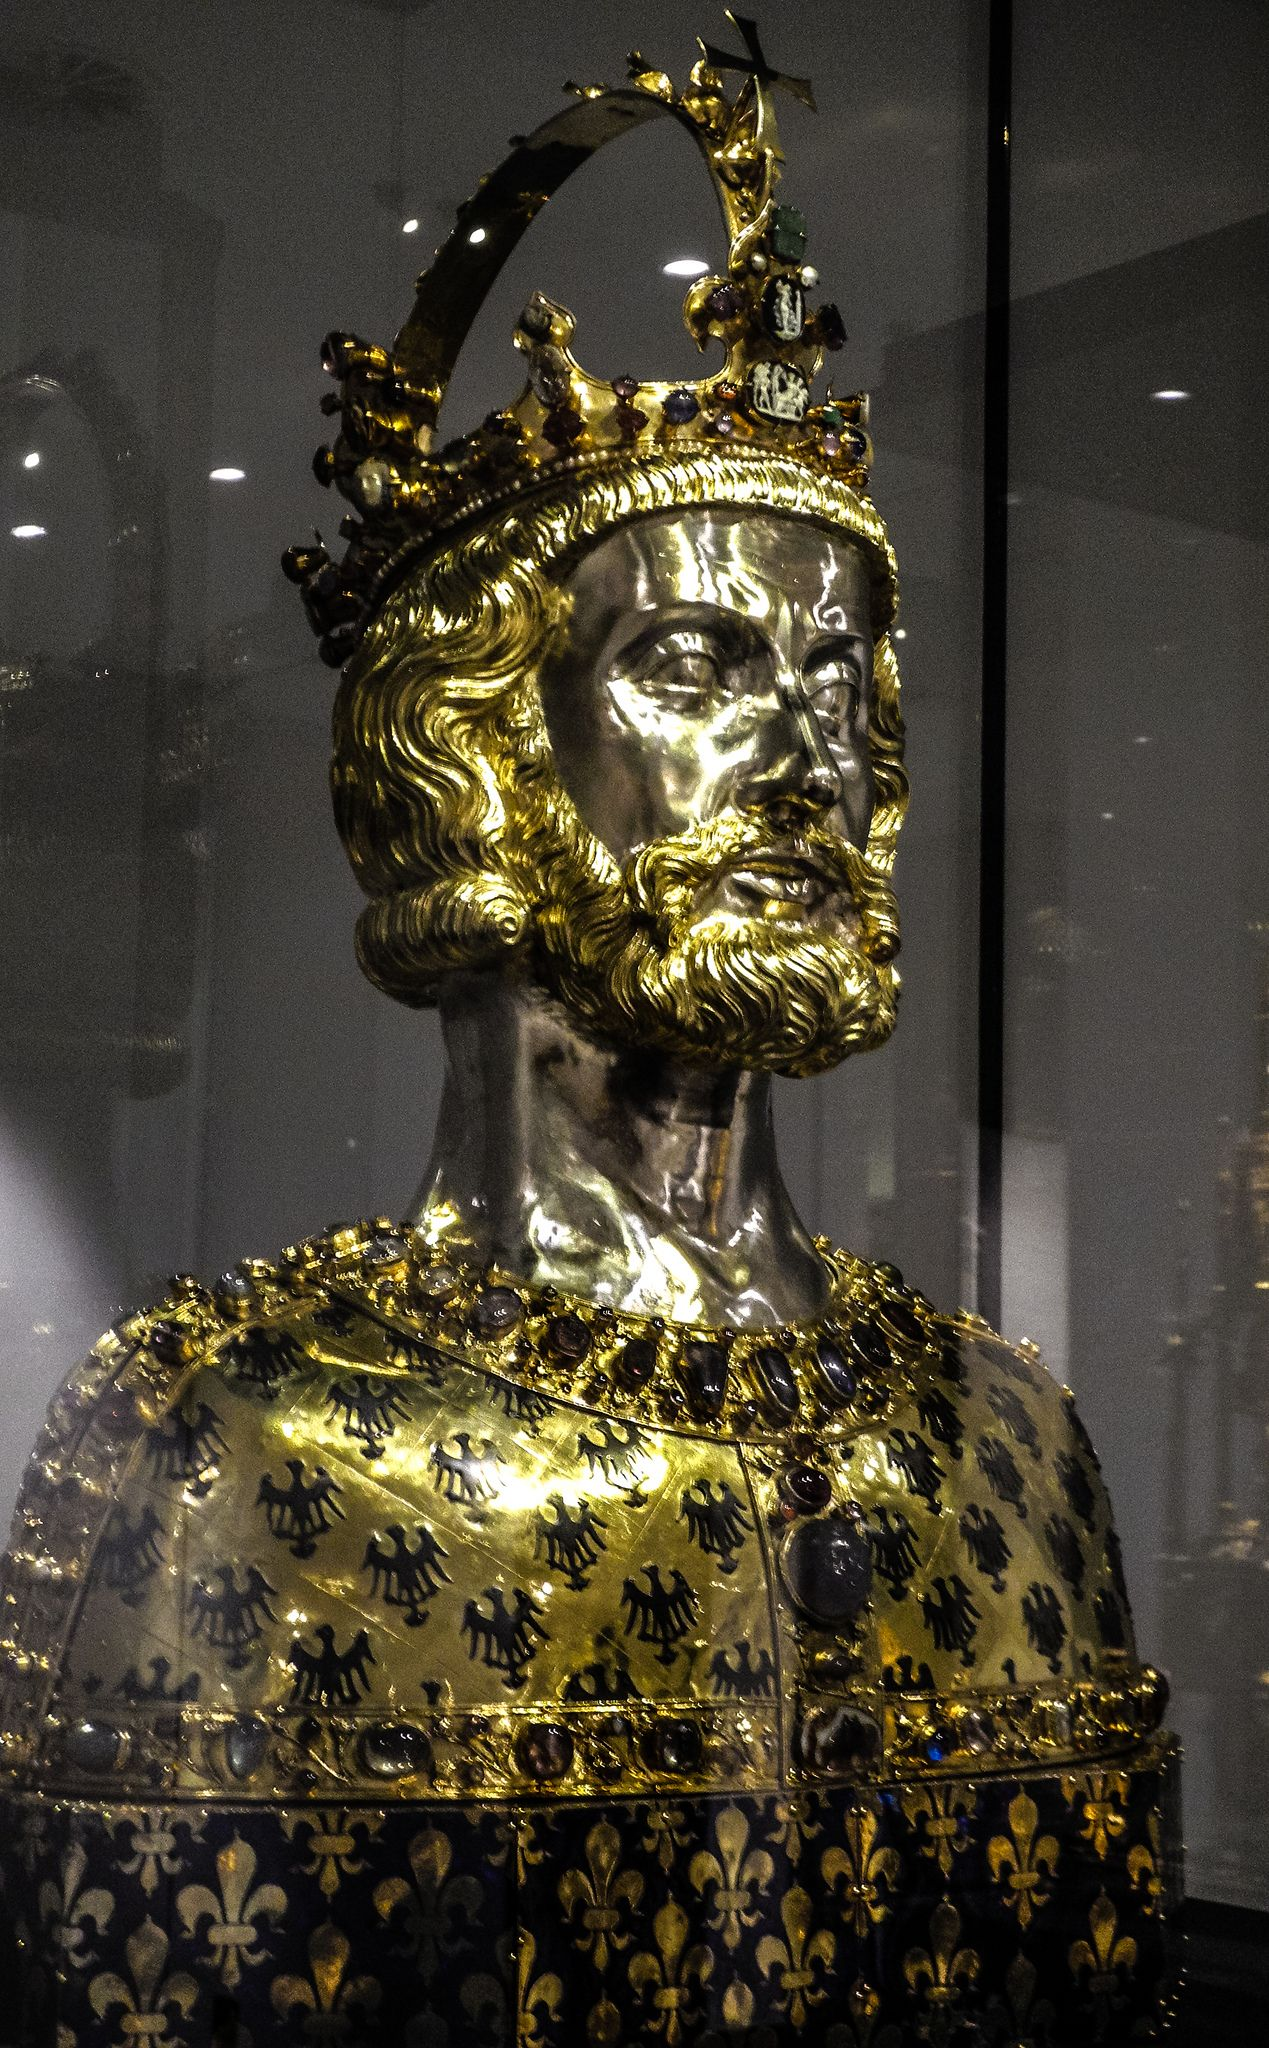 Reliquary bust of Charlemagne, 1349, Goldsmith's art, Germany, 14th century,... (containing Carolus's cranium, the top/braincase of his skull)